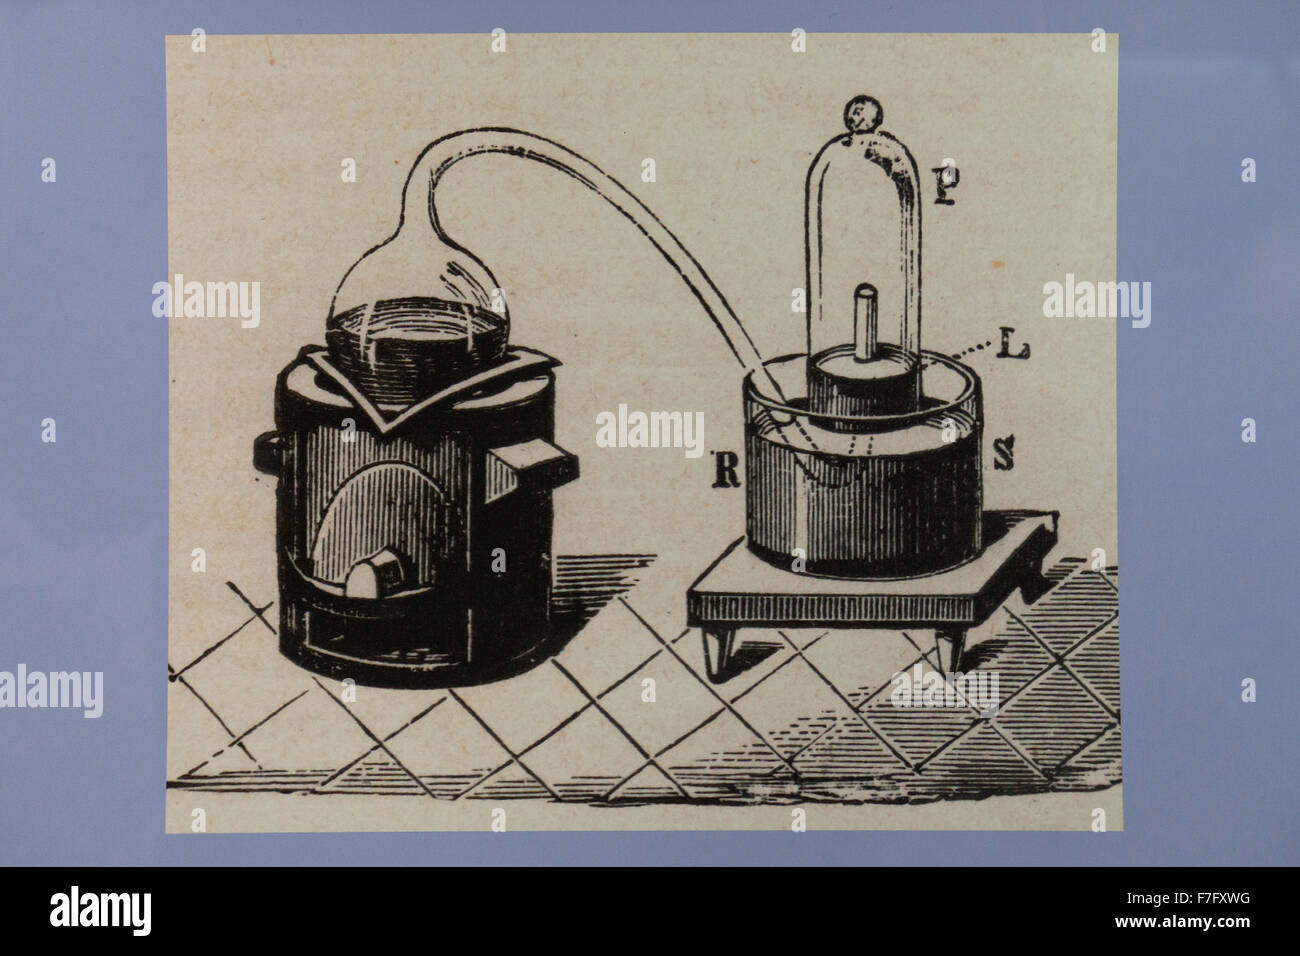 Illustration of retort and bell jar used in chemistry, circa 1897 - Stock Image